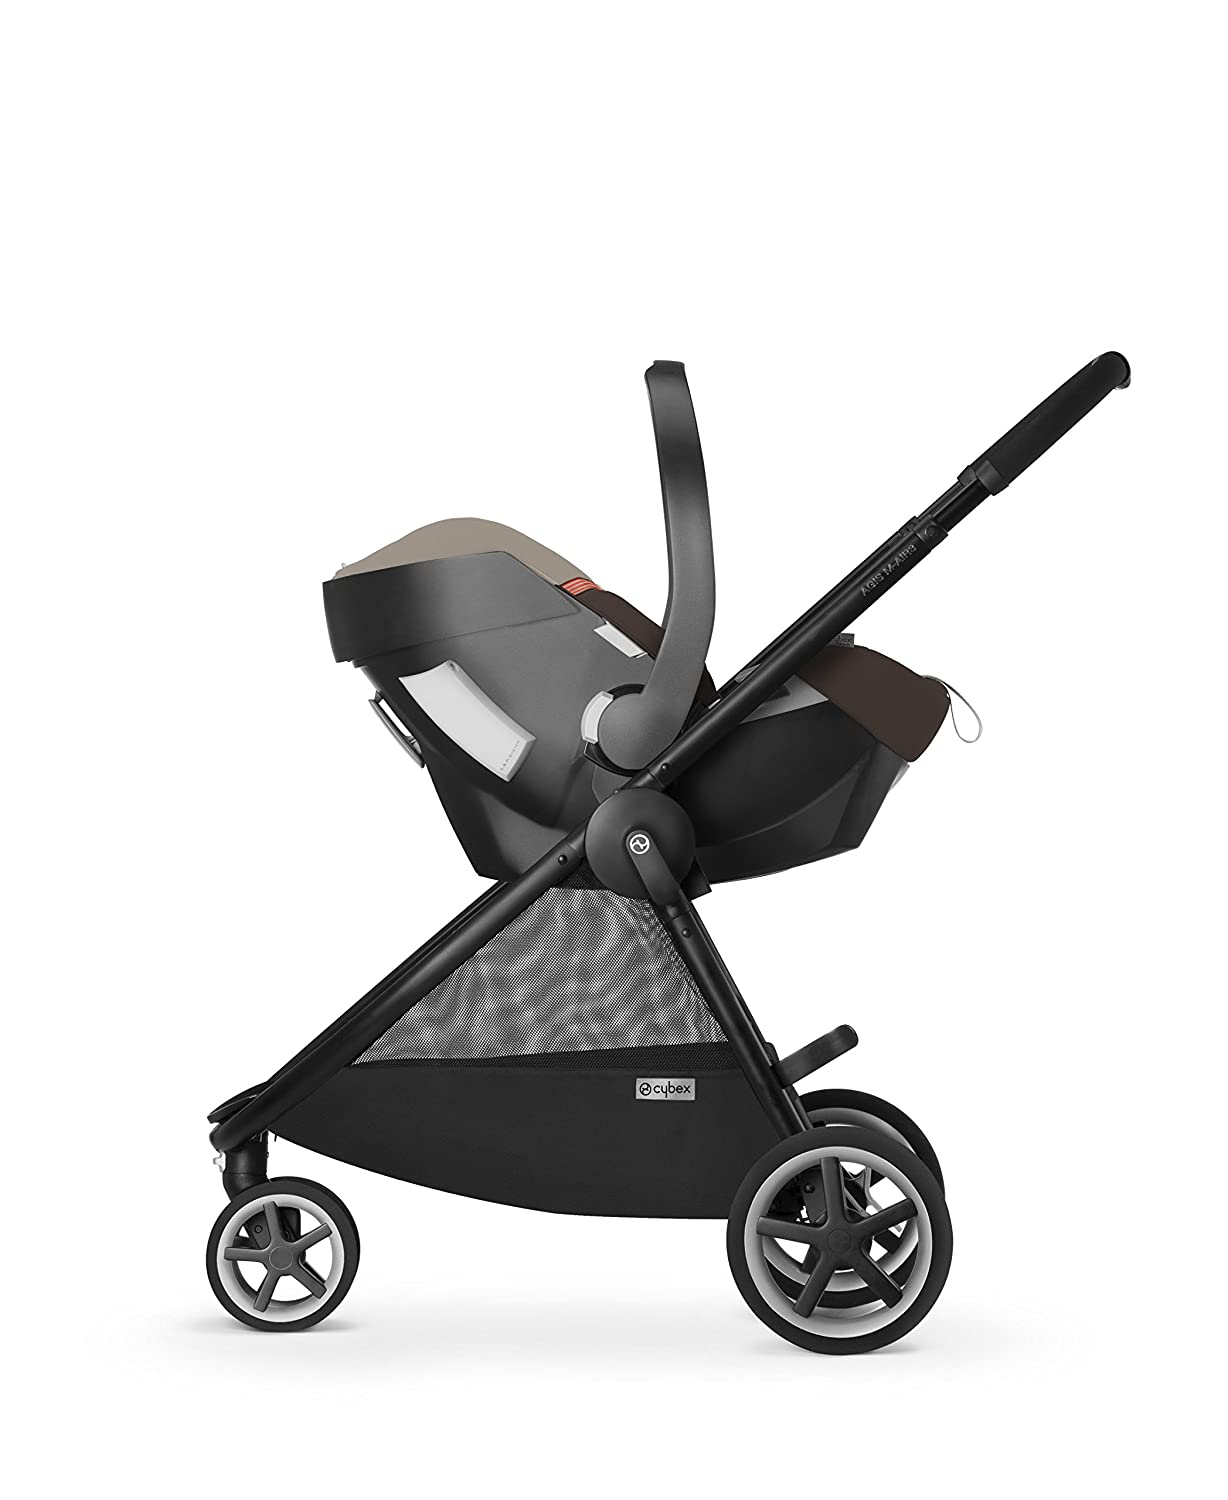 CYBEX Agis M-Air3 Baby Stroller, Hot and Spicy